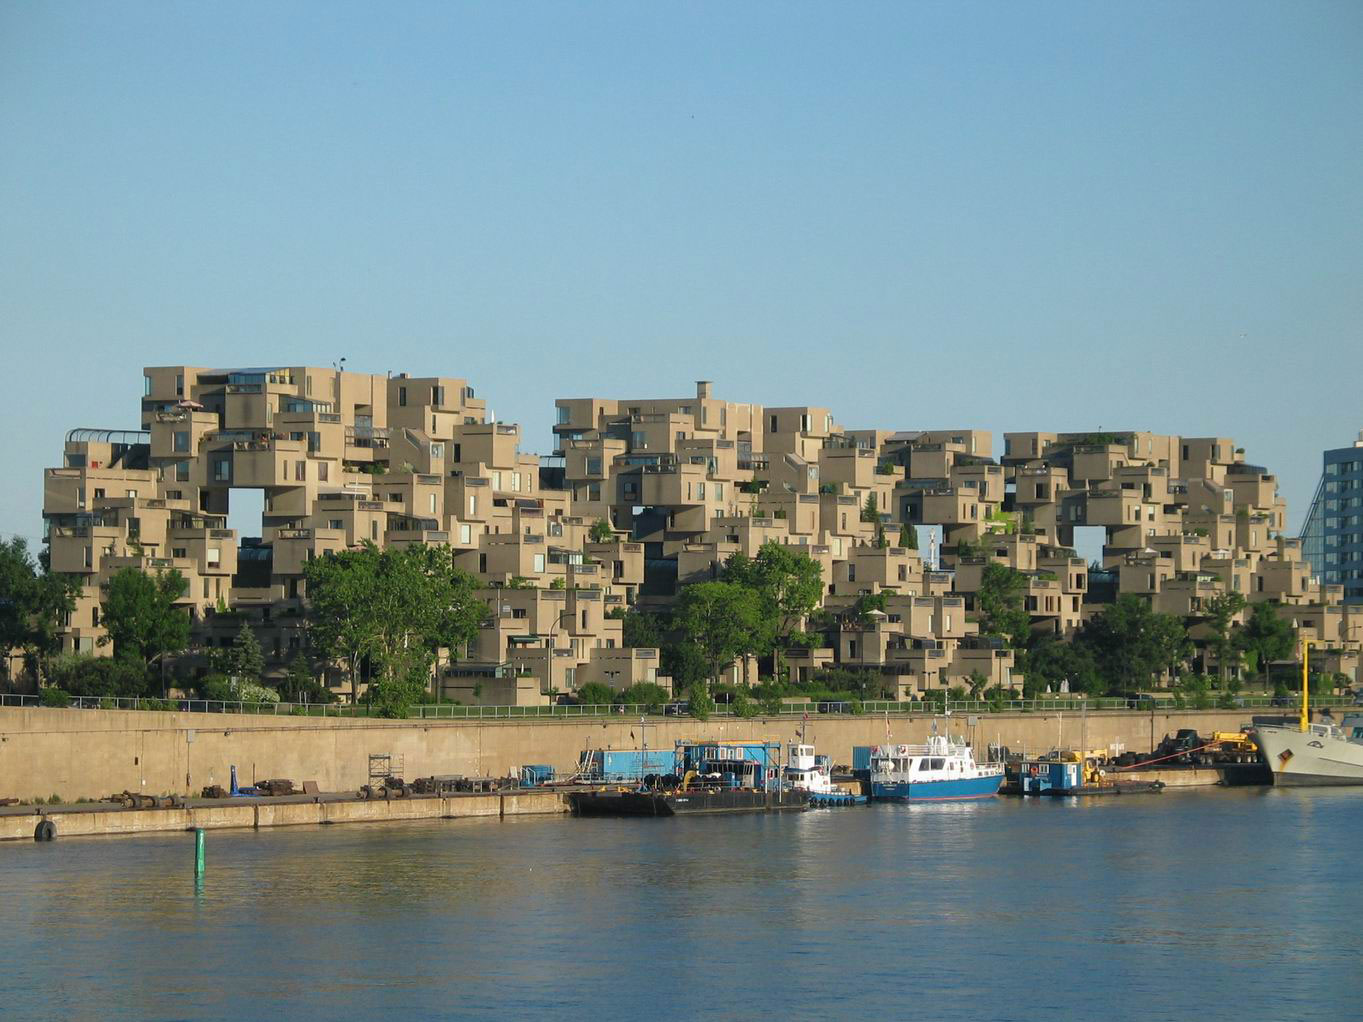 Habitat 67